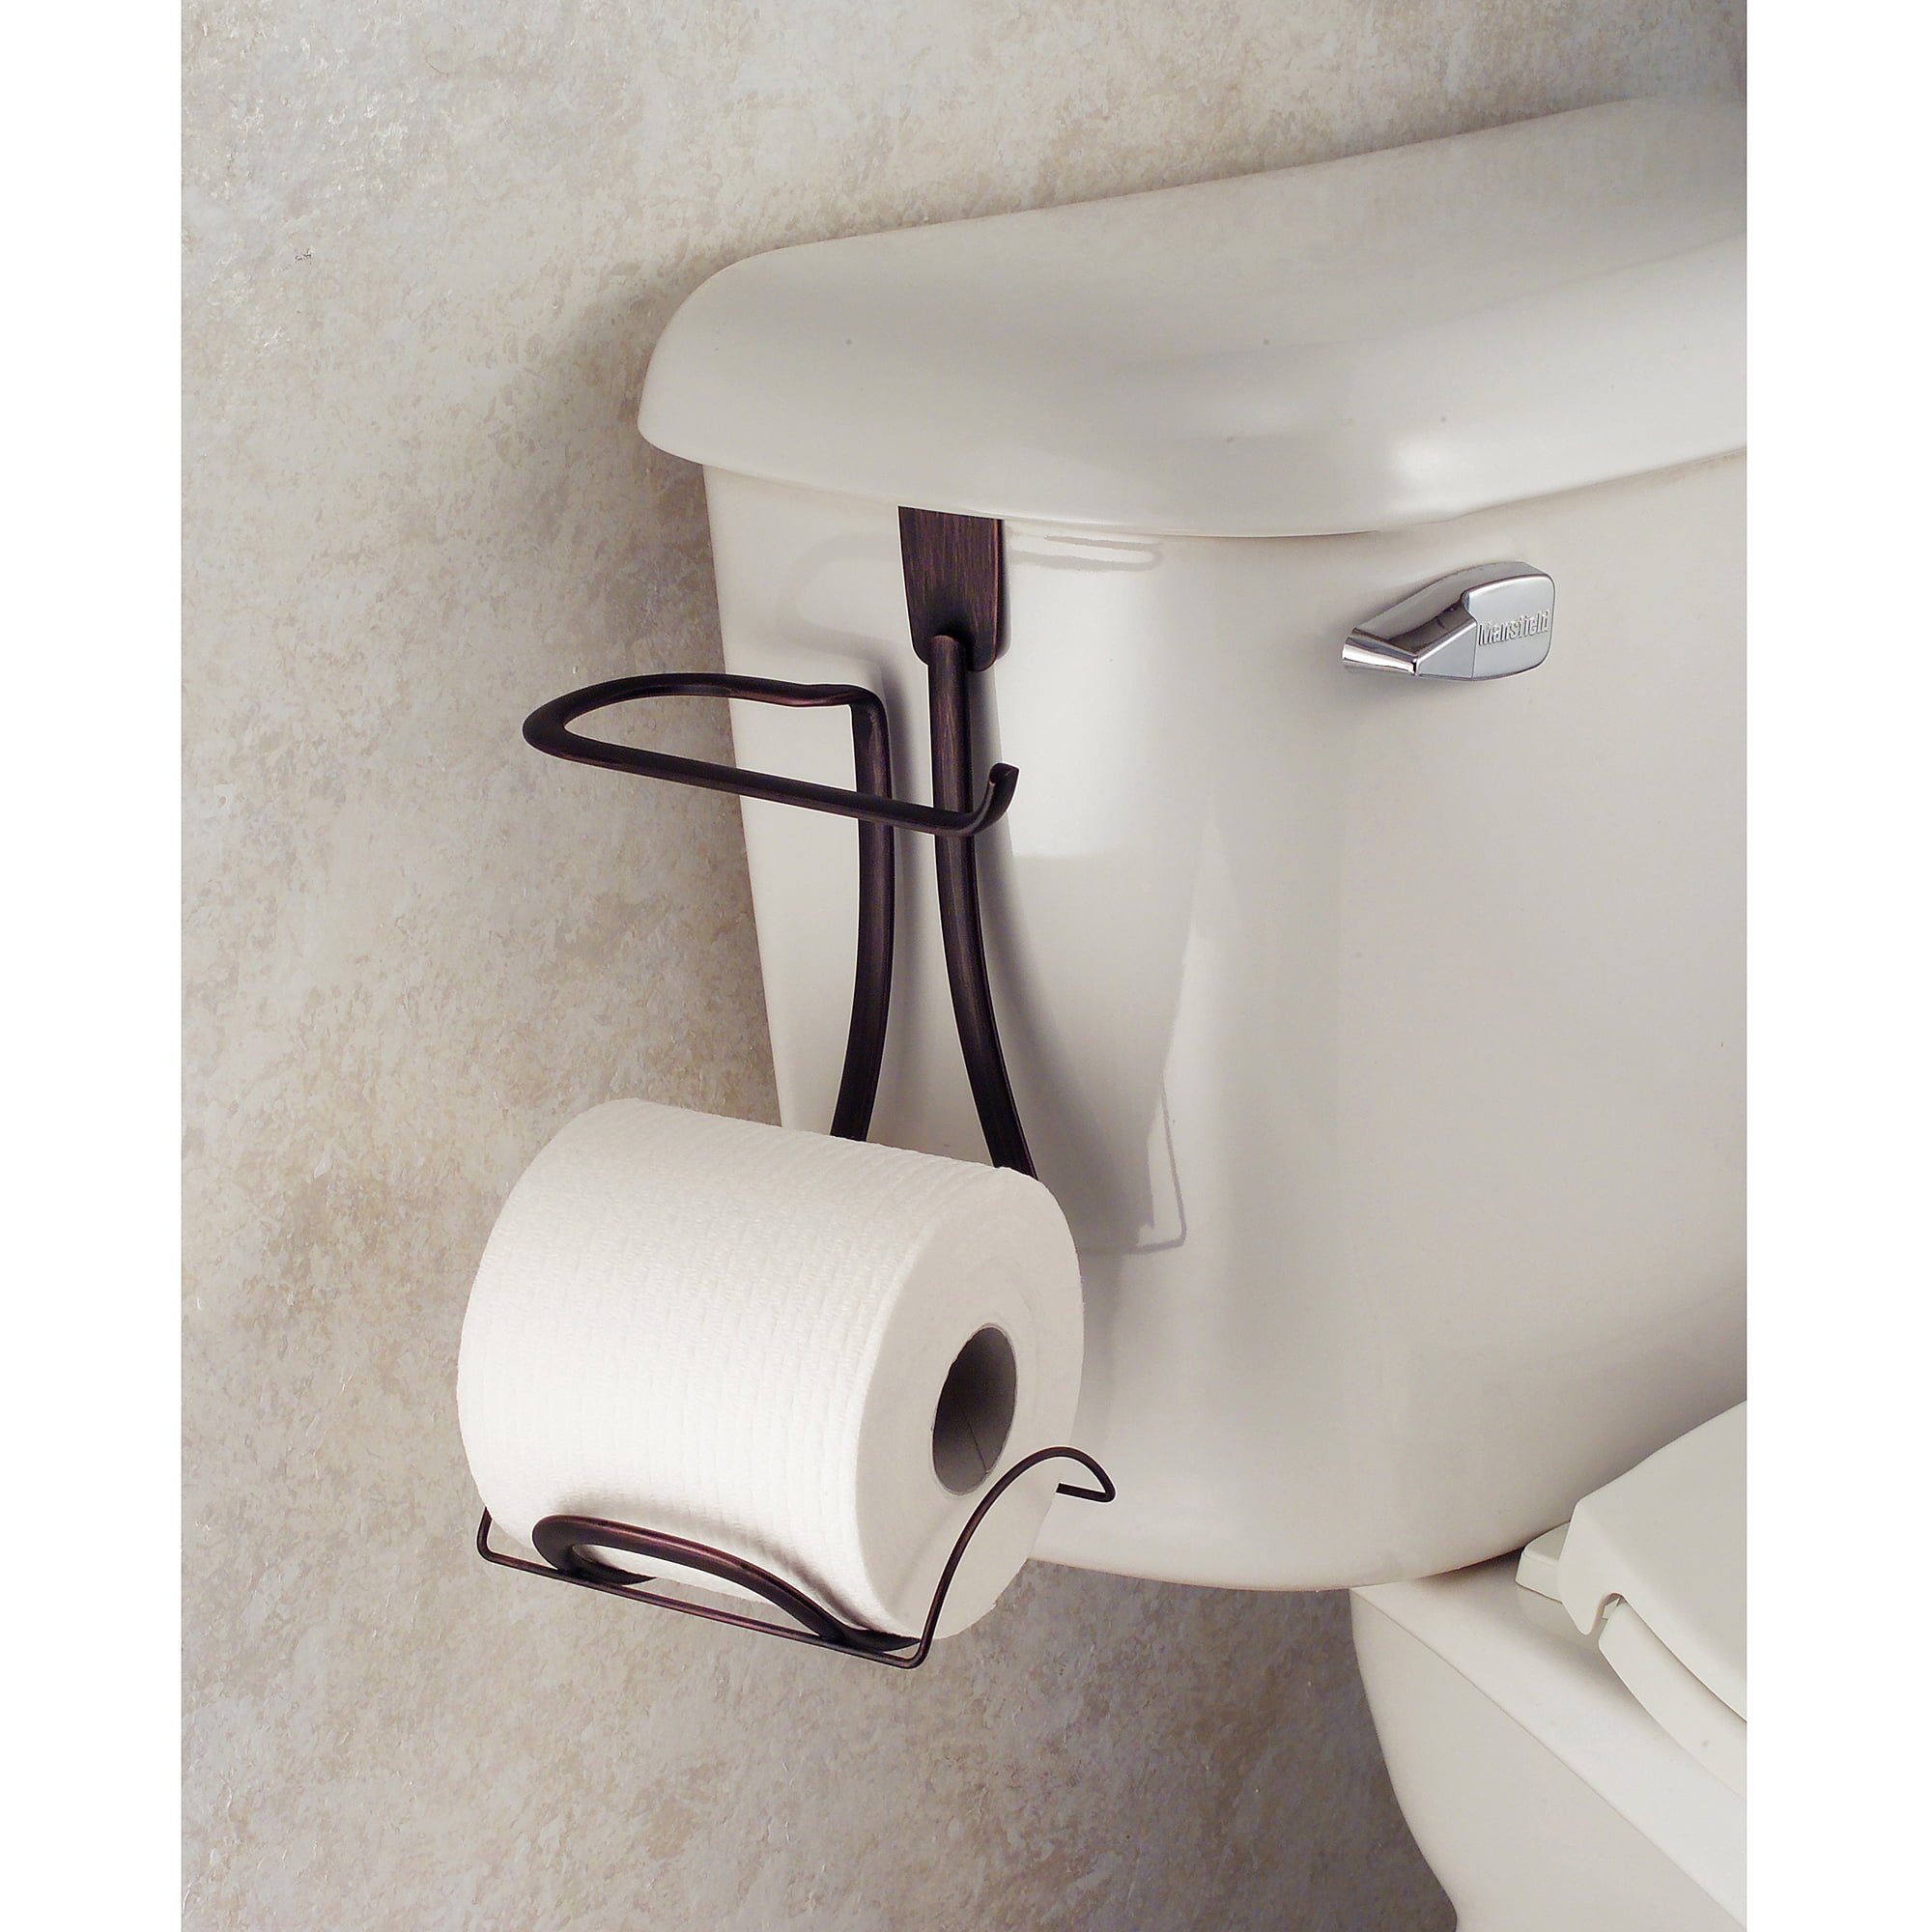 Modern bathroom toilet paper holder - Interdesign Axis Toilet Paper Holder For Bathroom Storage Over The Tank Bronze